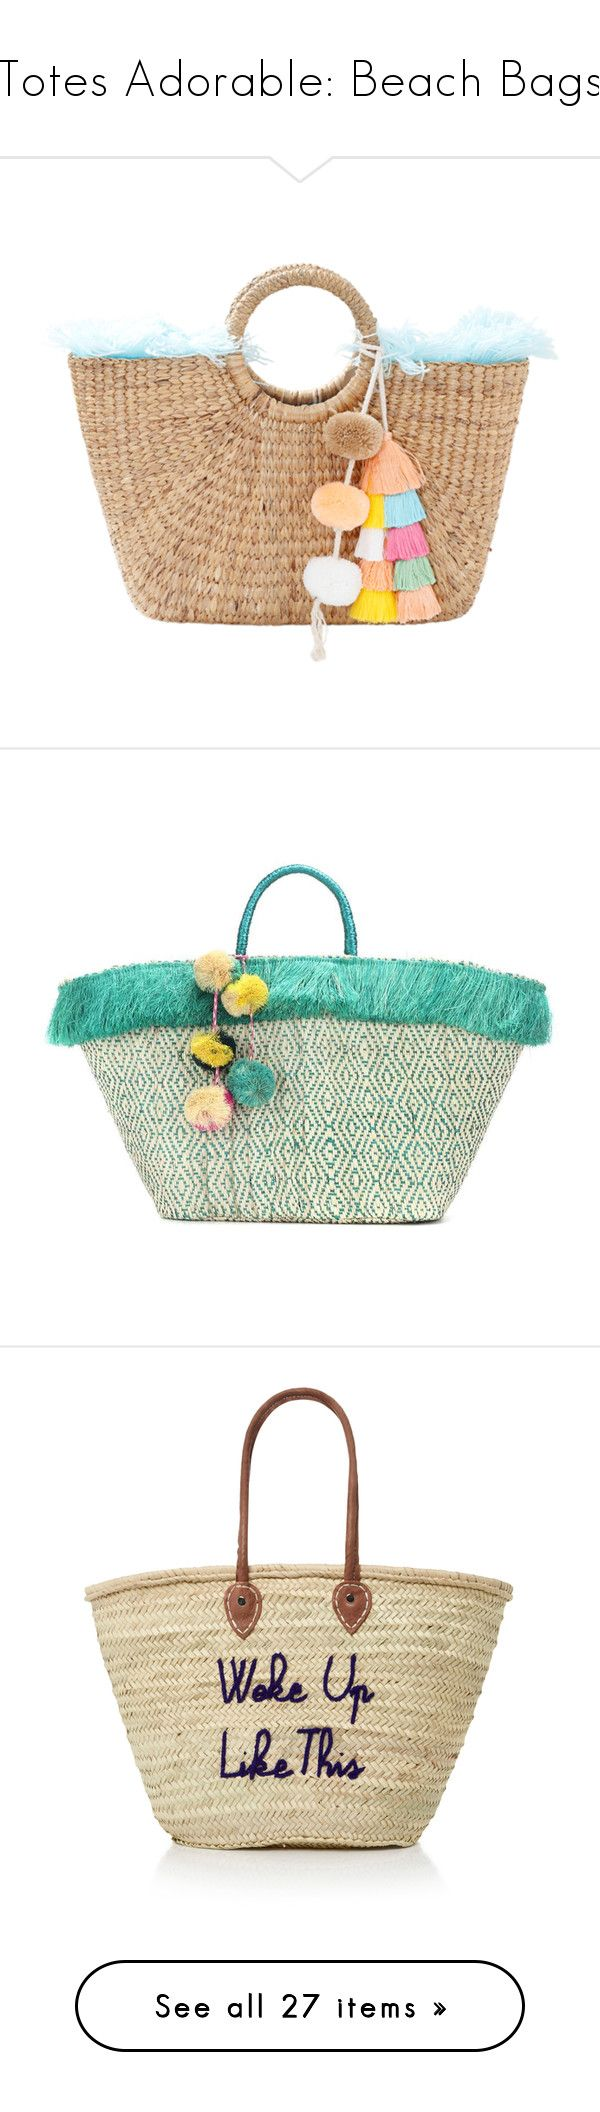 """""""Totes Adorable: Beach Bags"""" by polyvore-editorial ❤ liked on Polyvore featuring BeachBags, bags, handbags, jadetribe bags, straw bags, jadetribe, beige handbags, straw handbags, tote bags and beige"""